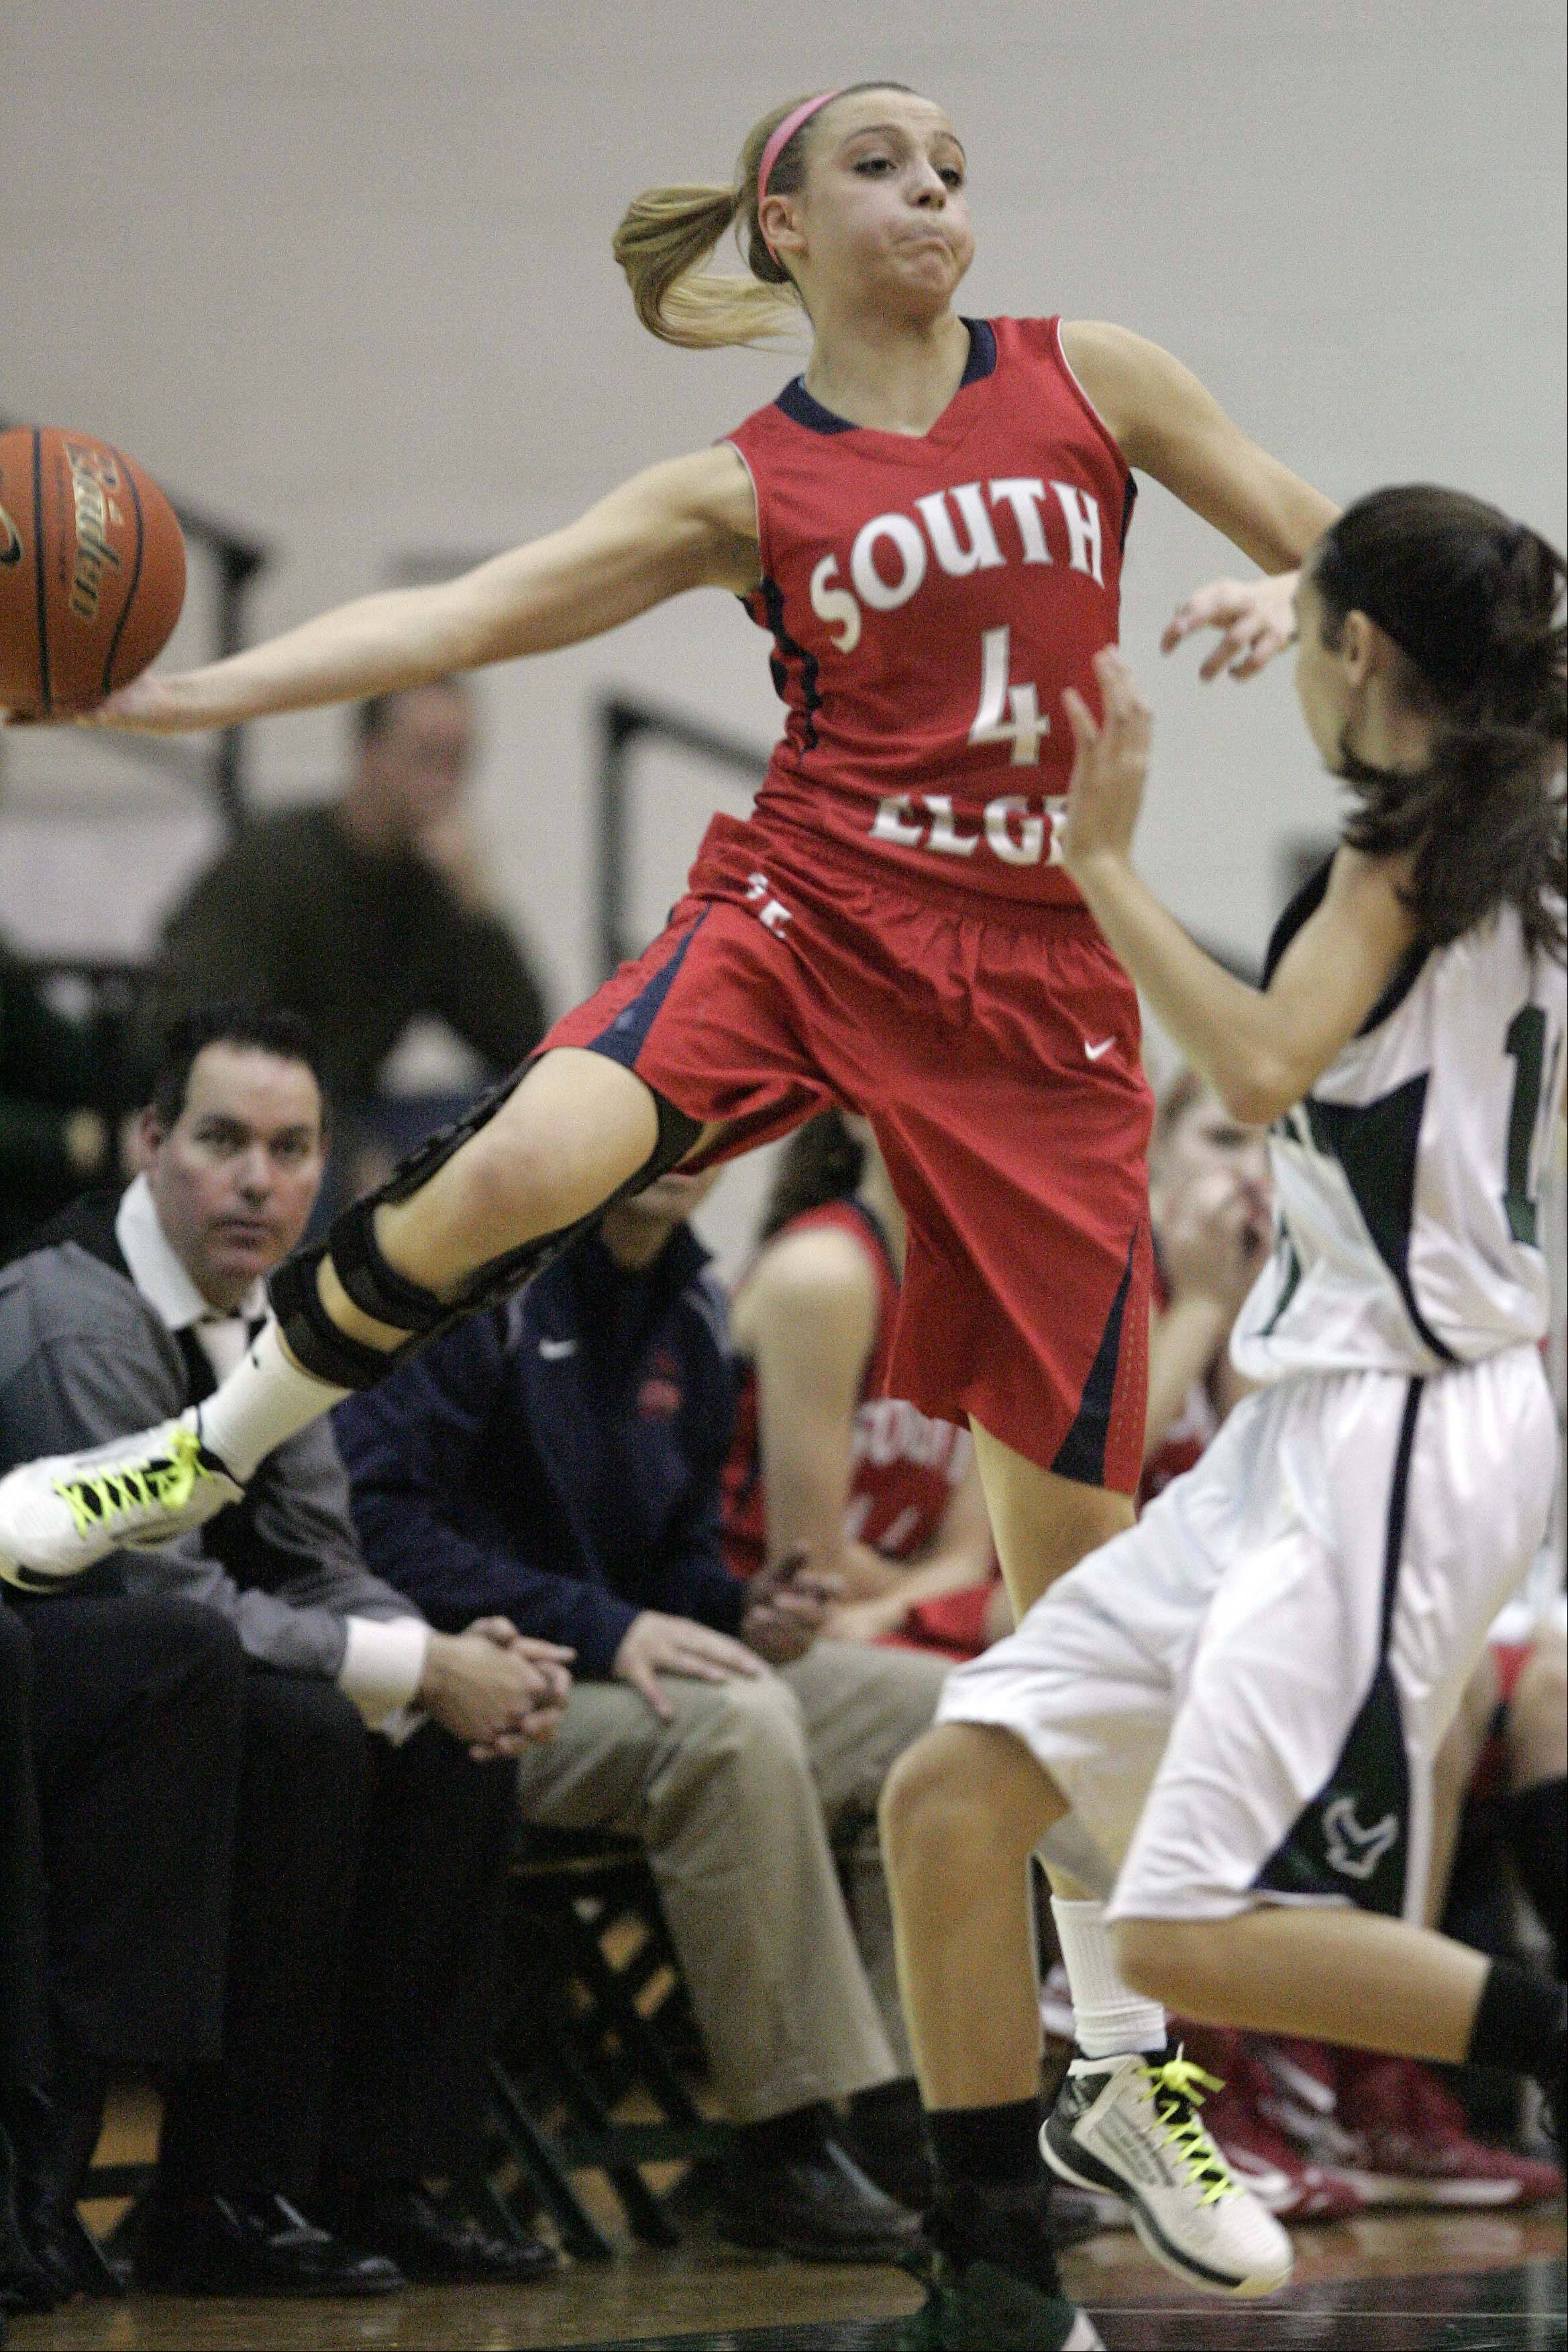 South Elgin's Savanah Uveges, 4, leaps out of bounds as she tries to save an errant pass at Bartlett on Saturday.